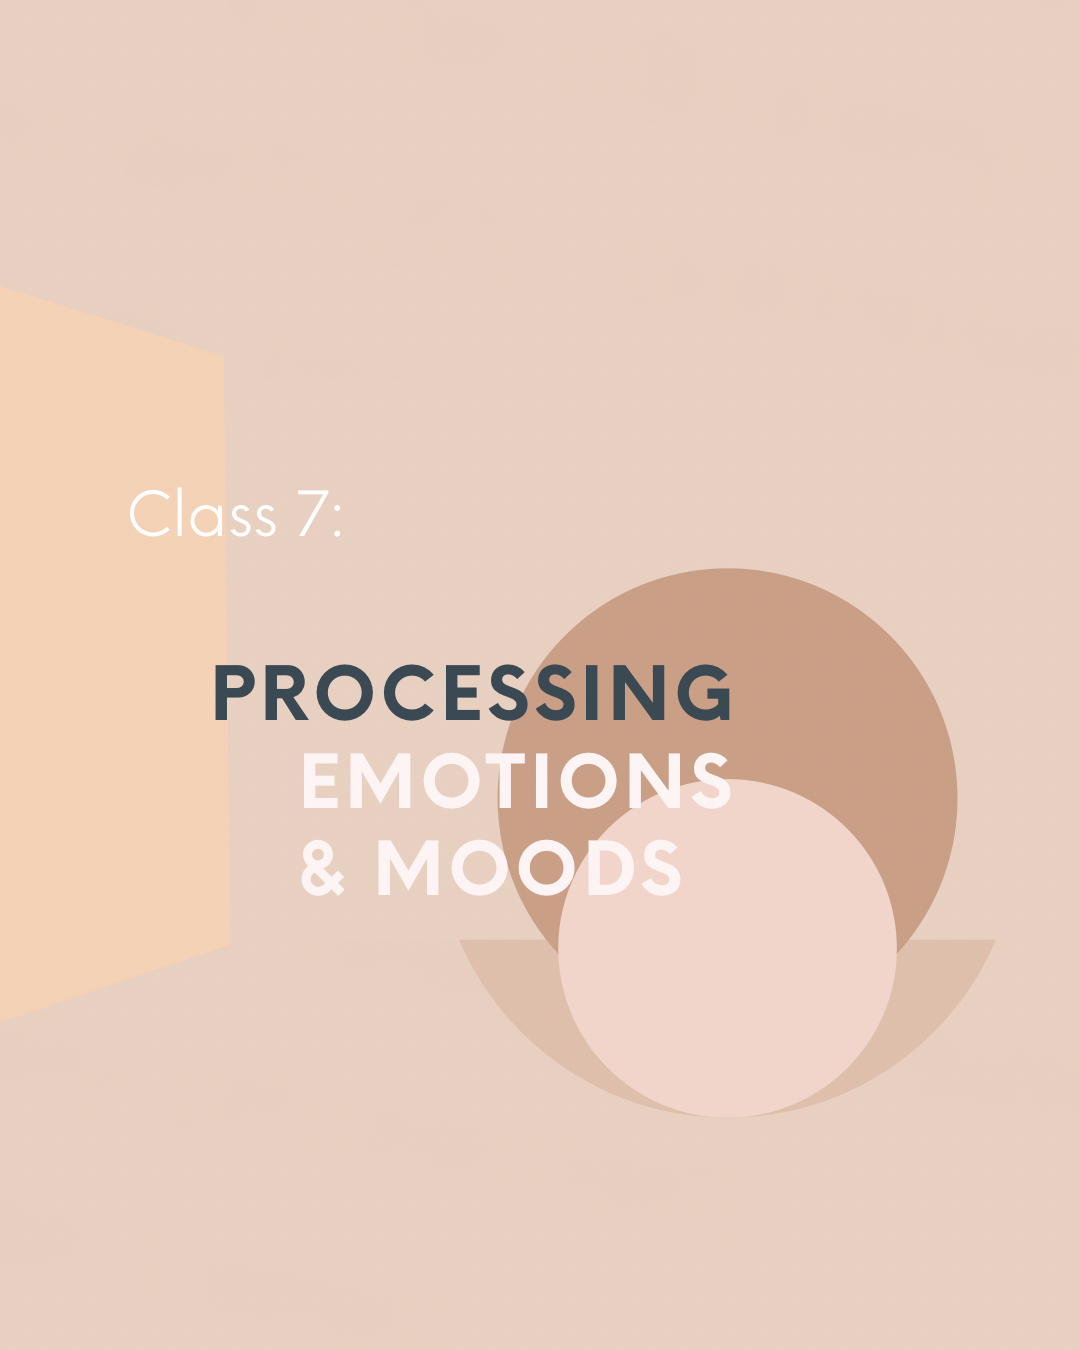 Processing Emotions & Moods  -  Emotions manifest in waves and sometimes in storms.Vibrating higher daily, self-mastery, healing, restoring, and journeying empowered, is about knowing how to effectively process what you're feeling on the inside.Emotions are teachers and guides.Learn the empowering art of processing your emotions and moods, this Saturday!This class is about empowering you to (effectively) feel what you need to feel–and to (effectively) release all else, go beyond, and rise above.